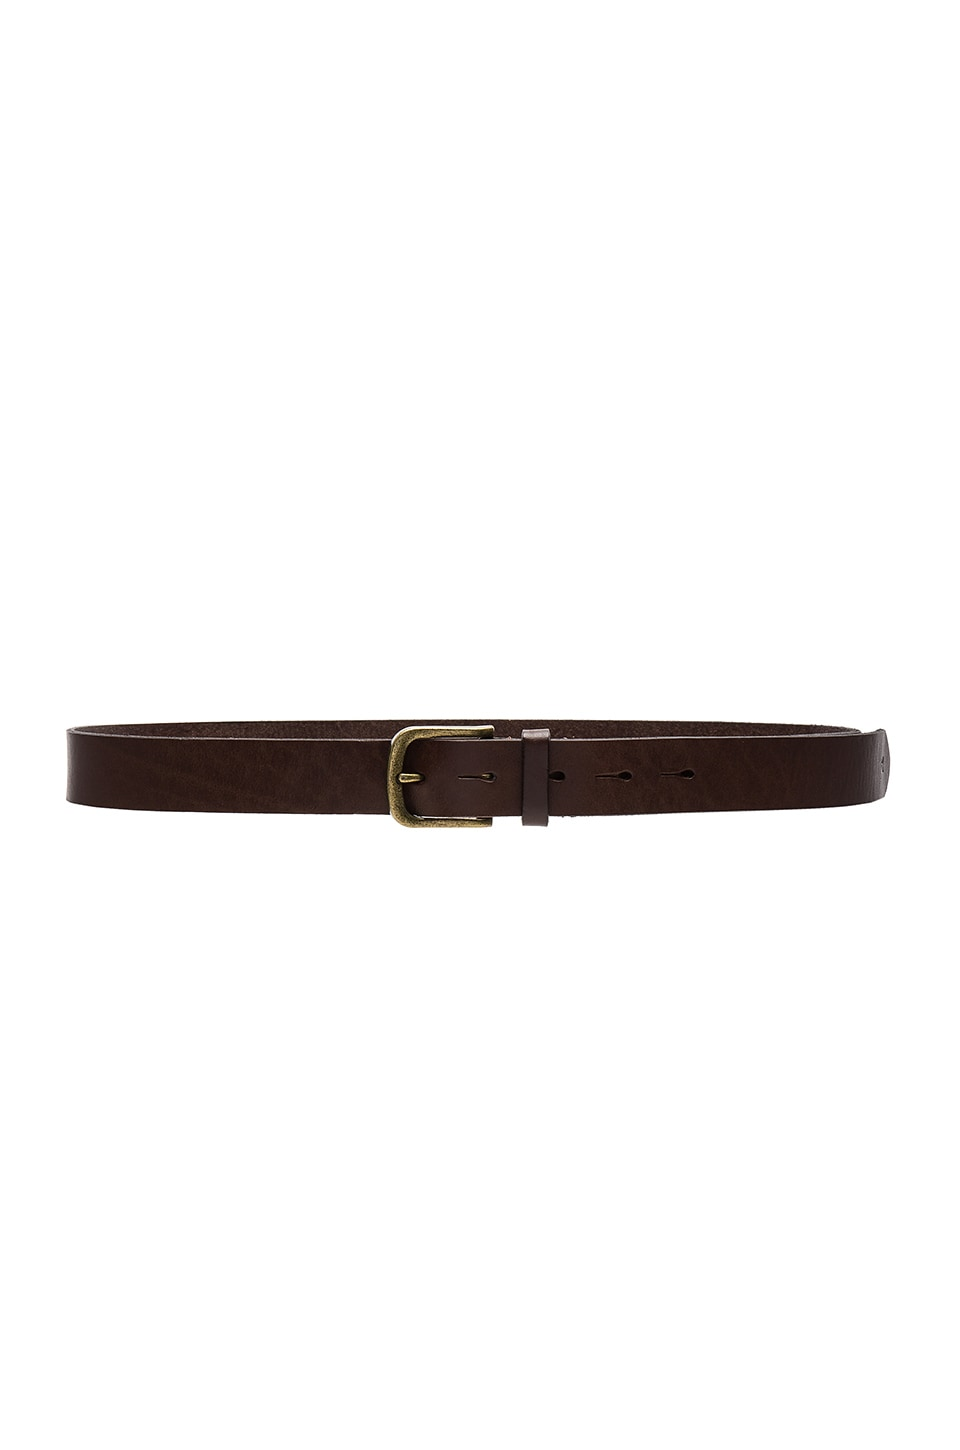 Leather Belt by Scotch & Soda